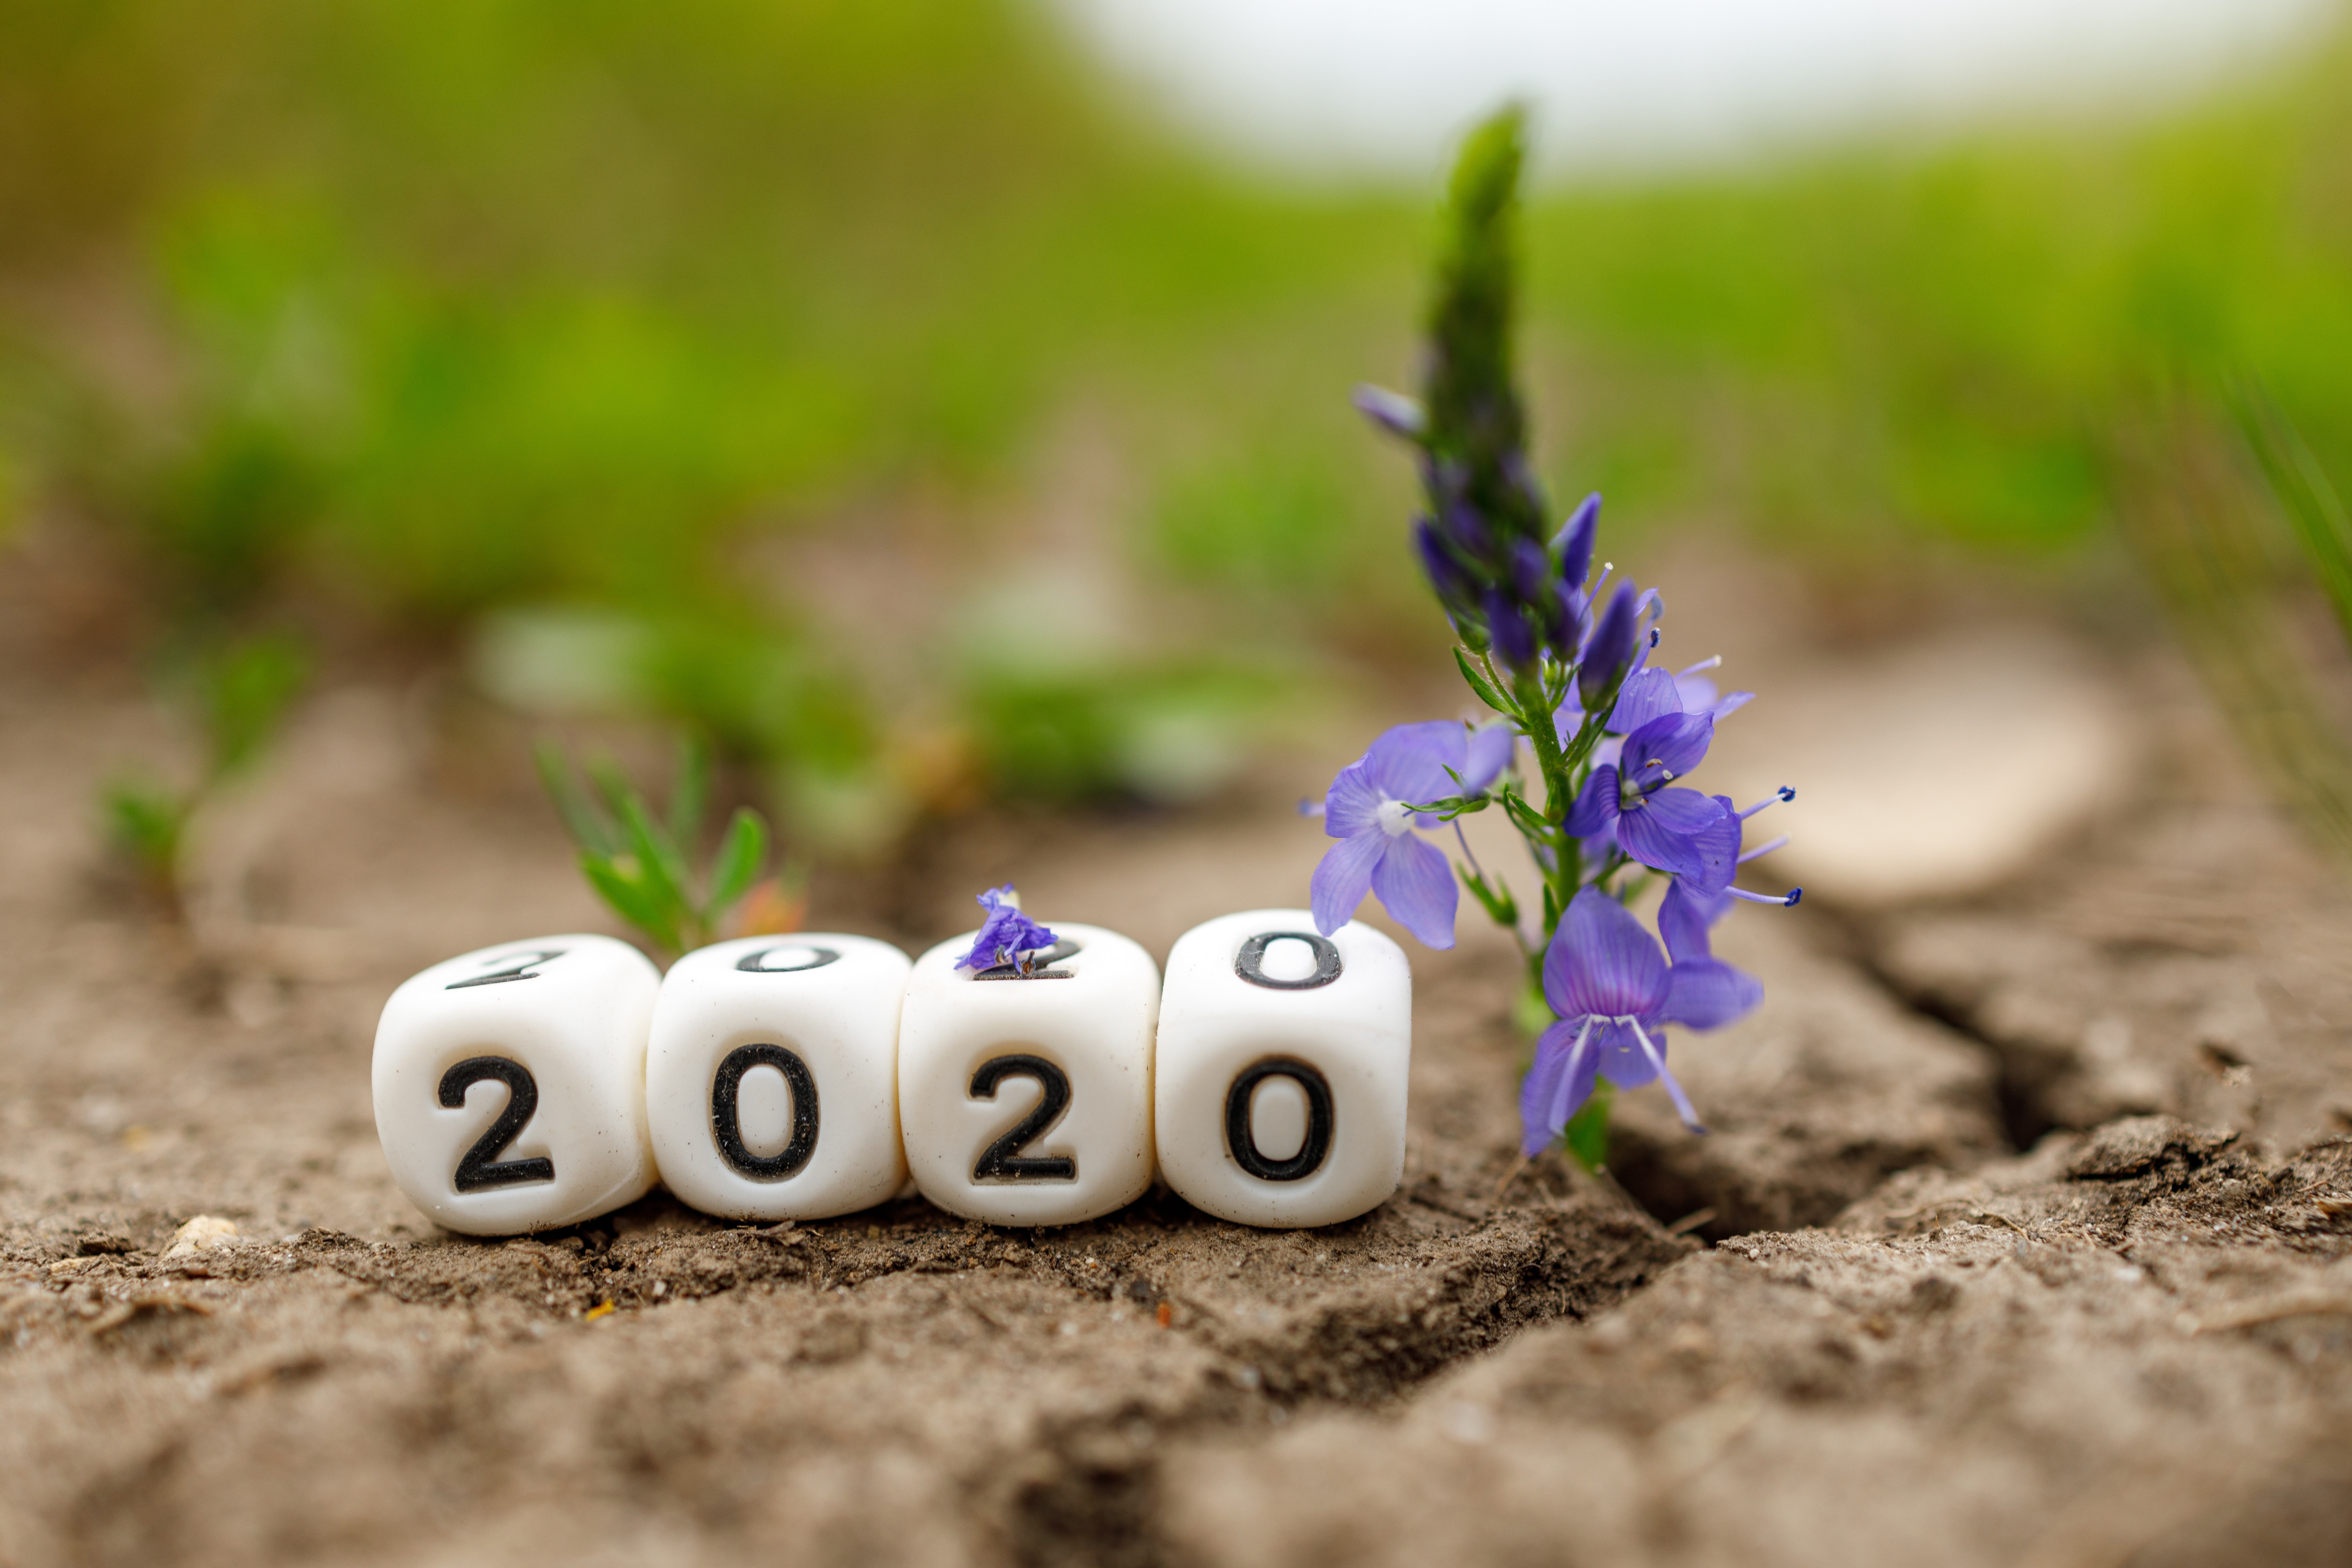 Four dice with numbers lined up to spell 2020 on the ground next to purple flowers